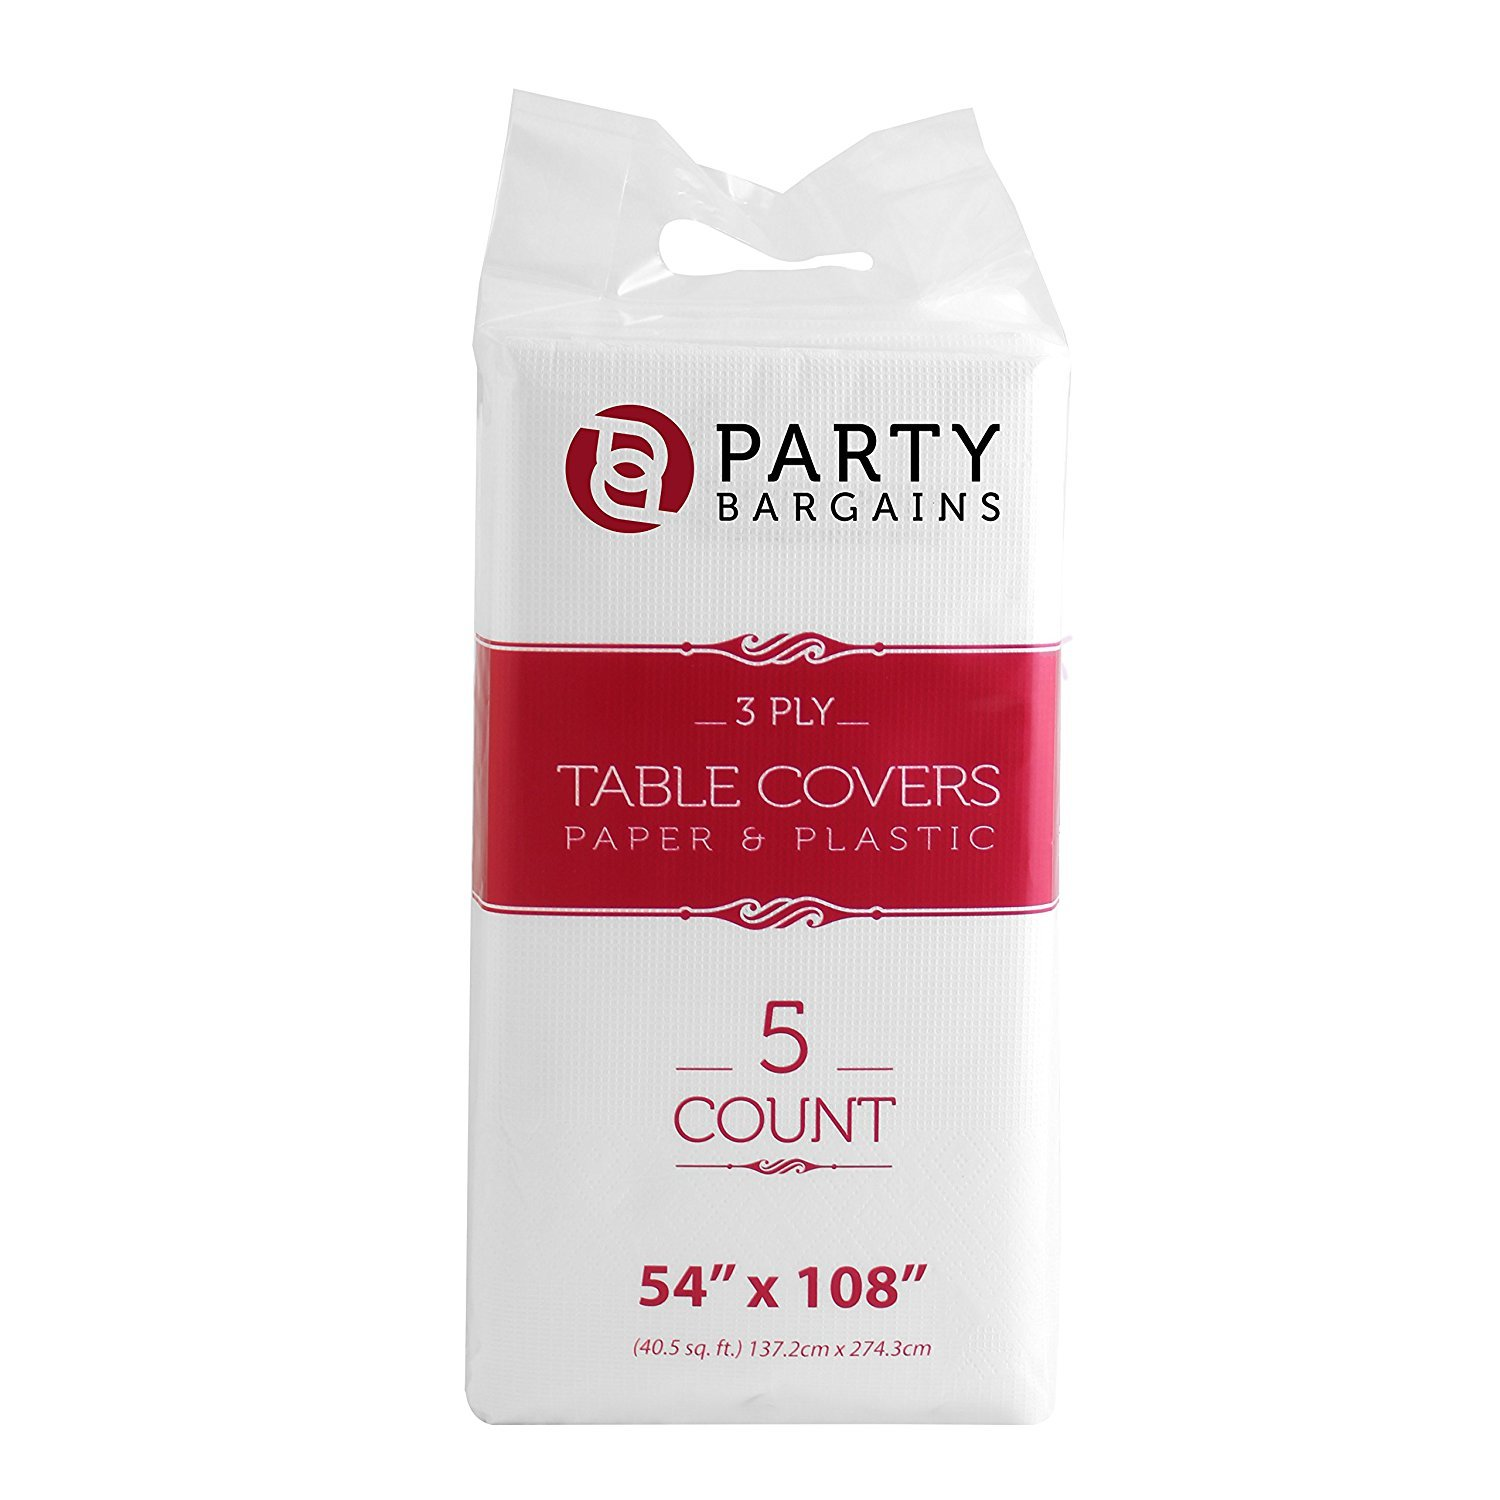 Party Bargains Disposable Table Cover | Classic White Paper 3 Ply Premium & Elegant Plastic Table Covers - Size 54'' X 108'' | Pack of 5